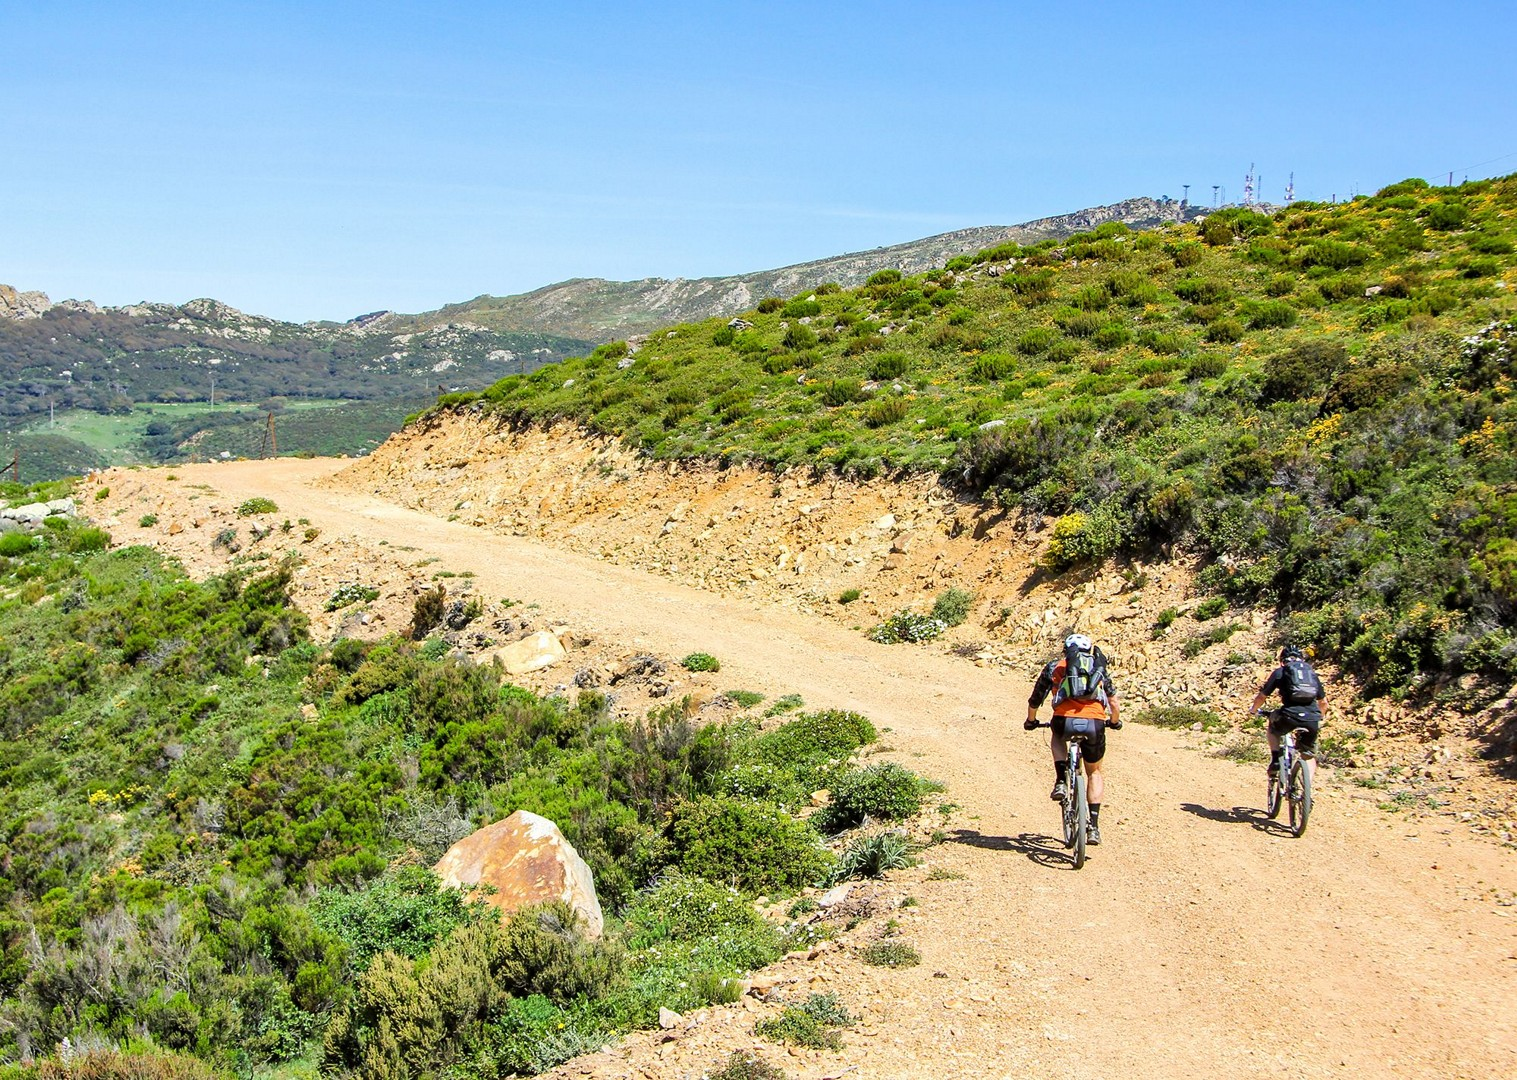 transandaluz12.jpg - Spain - Trans Andaluz - Guided Mountain Bike Holiday - Mountain Biking